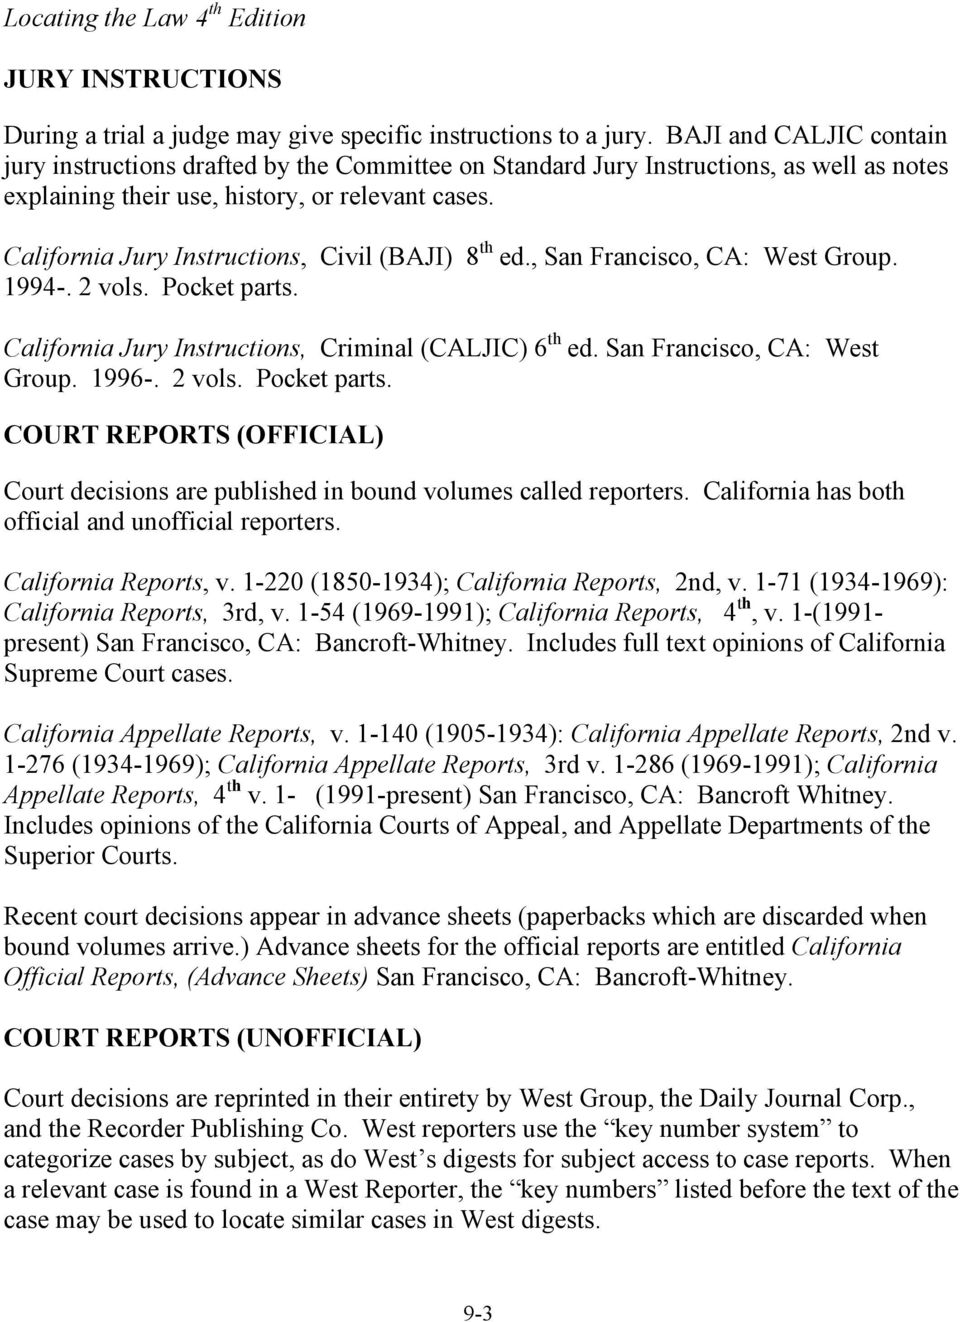 California Jury Instructions, Civil (BAJI) 8 th ed., San Francisco, CA: West Group. 1994-. 2 vols. Pocket parts. California Jury Instructions, Criminal (CALJIC) 6 th ed. San Francisco, CA: West Group. 1996-.